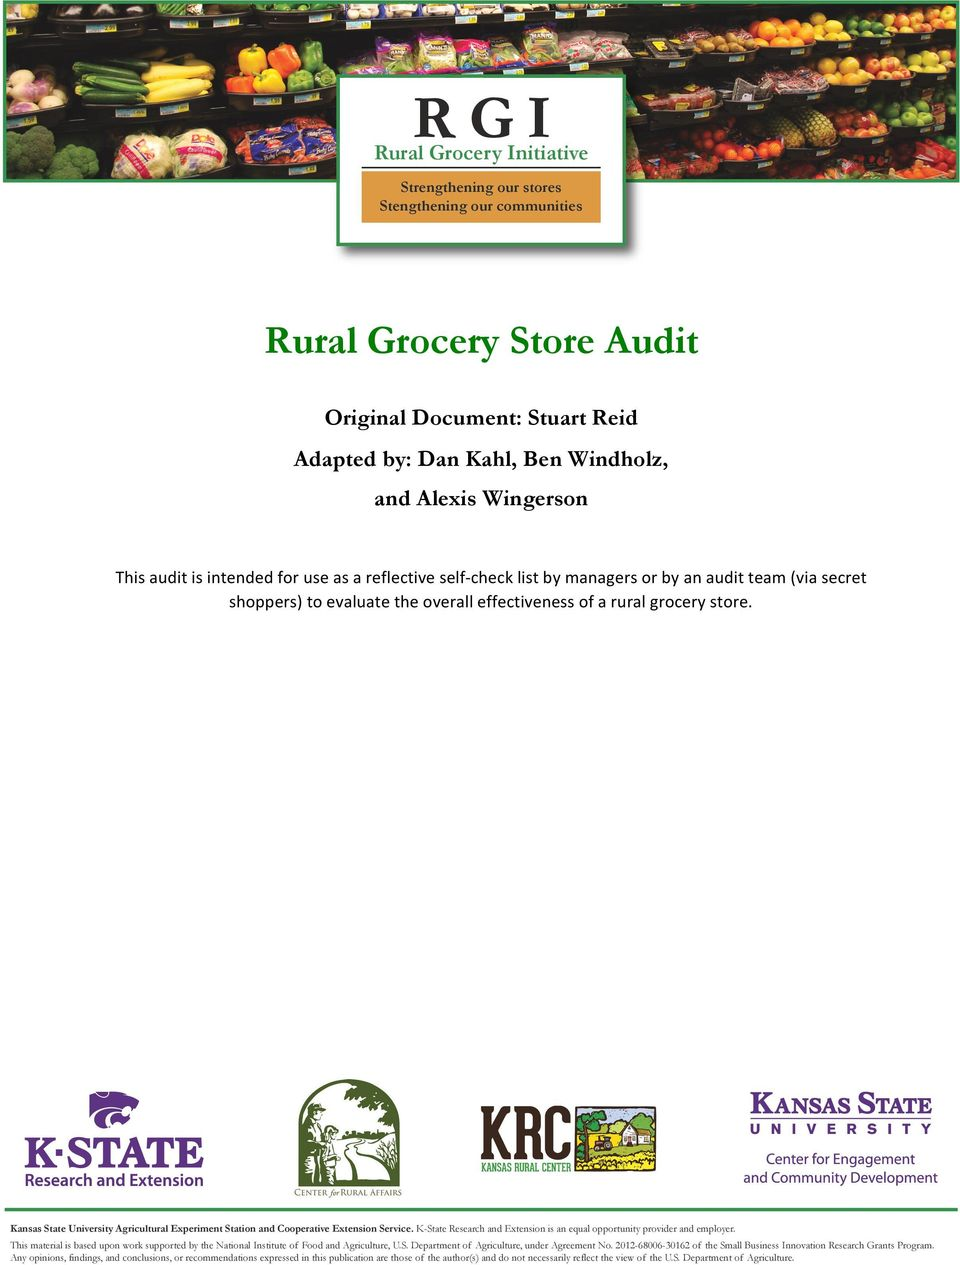 "for use as a reflective self- check list by managers or by an audit team (via secret shoppers) to evaluate the overall effectiveness of a rural grocery store. 6'-4'4""1/'/+""7-.0+&4./,""82&."